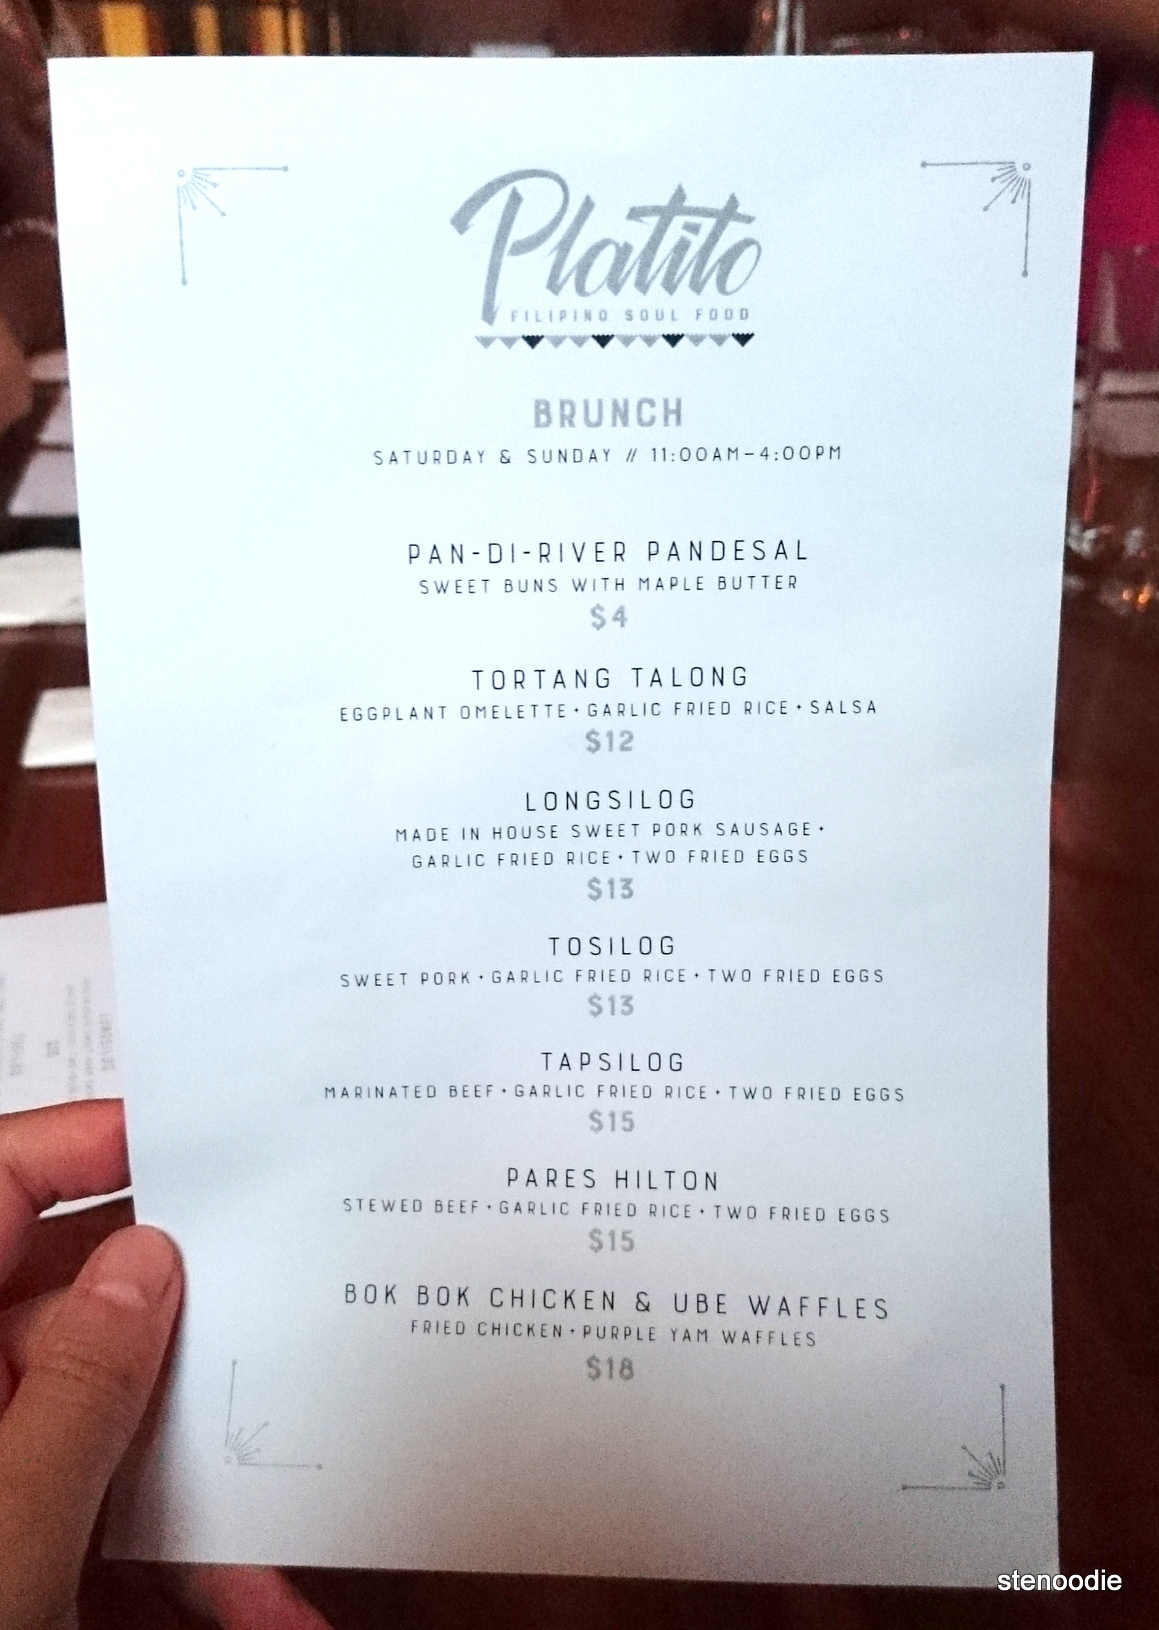 Platito Filipino Soul Food Brunch menu and prices